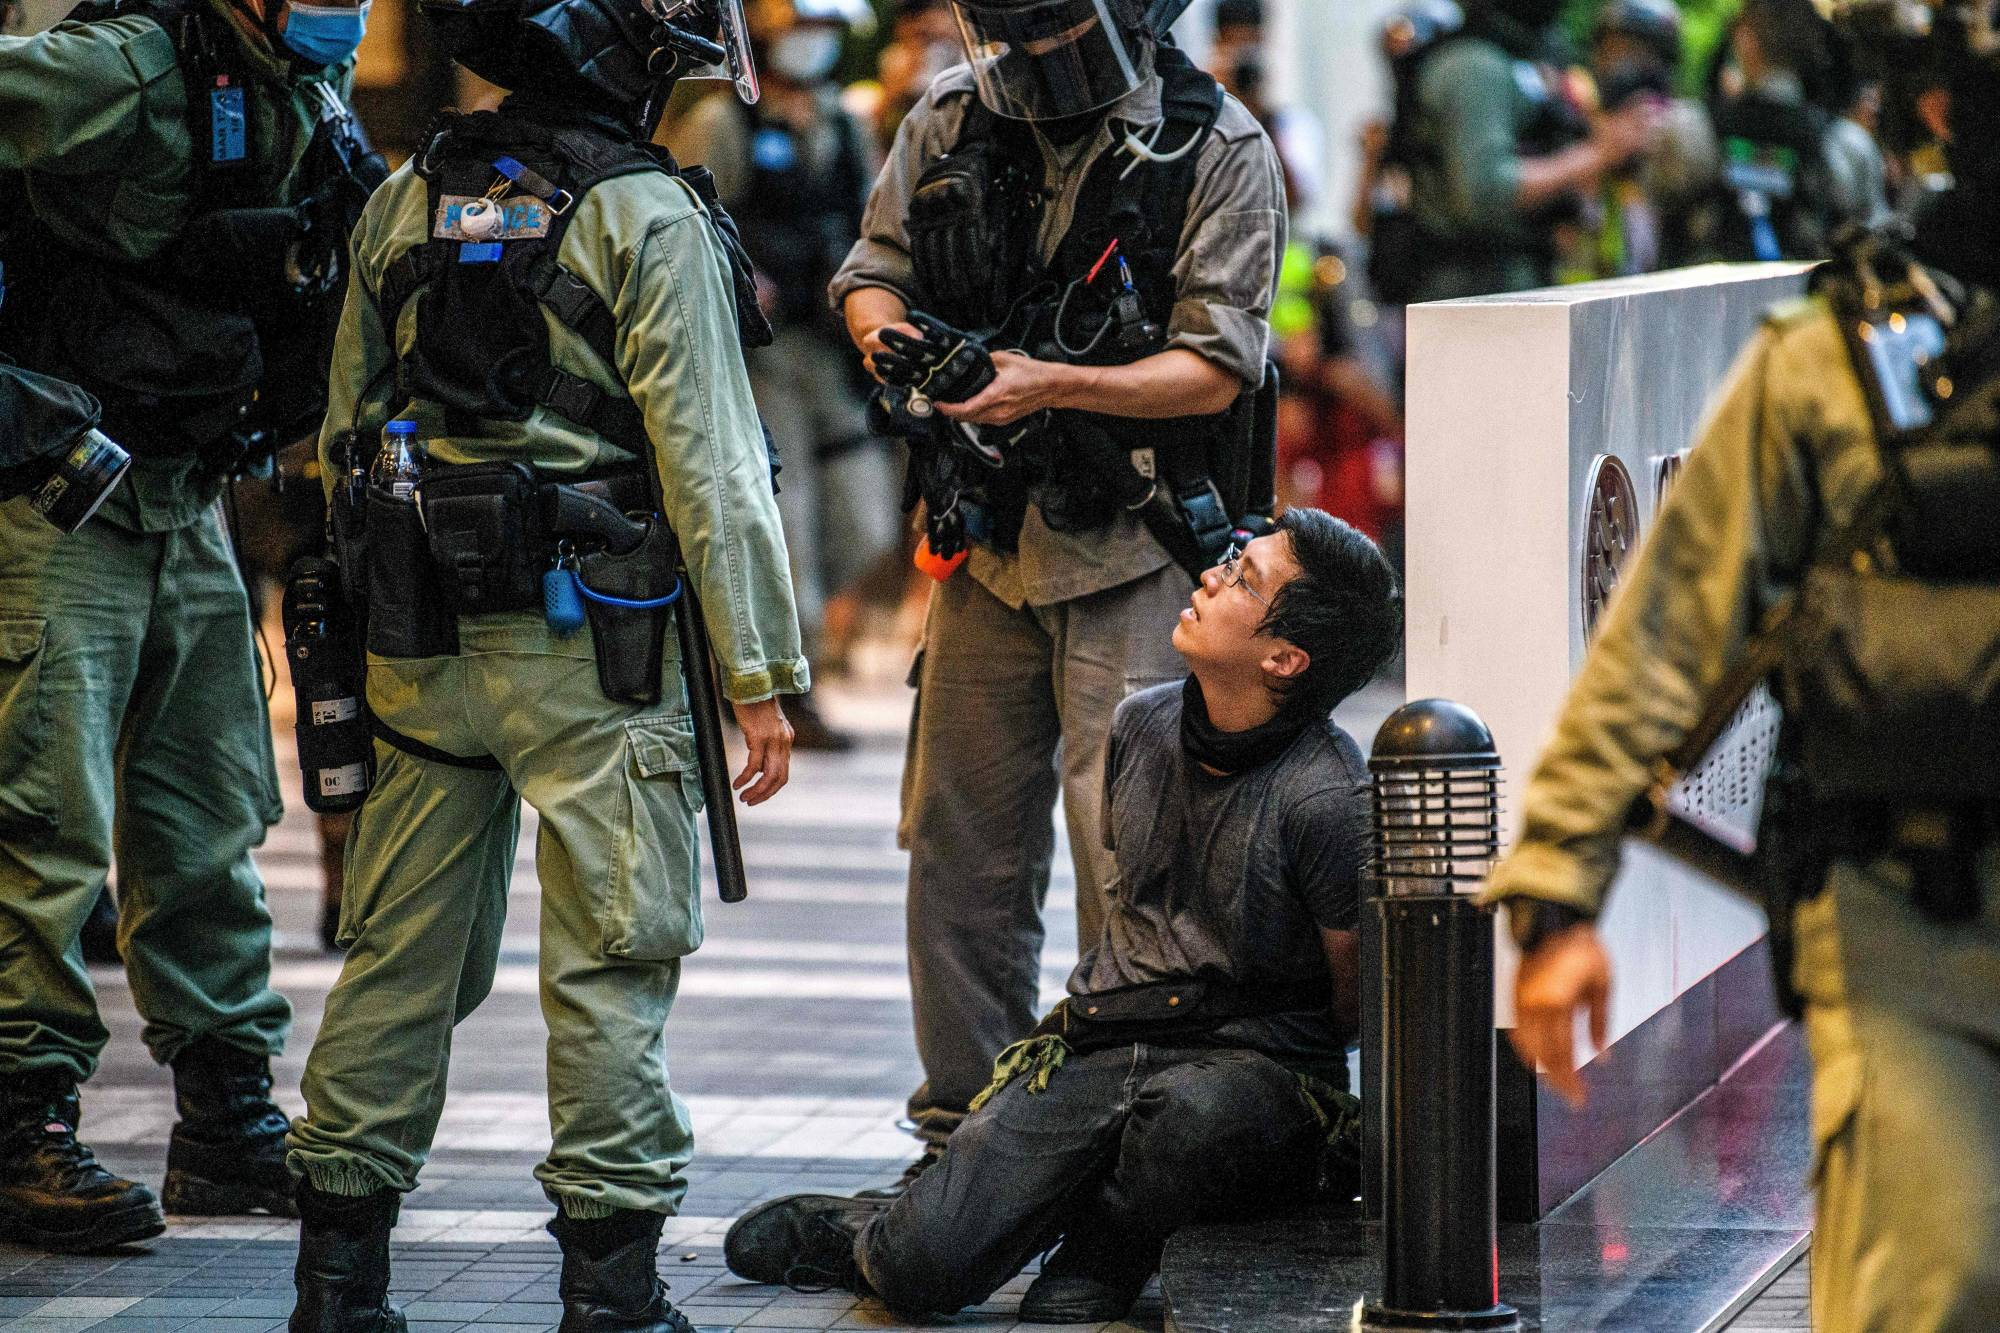 A protester is detained by police during a rally against a new national security law in Hong Kong on Wednesday.  | AFP-JIJI